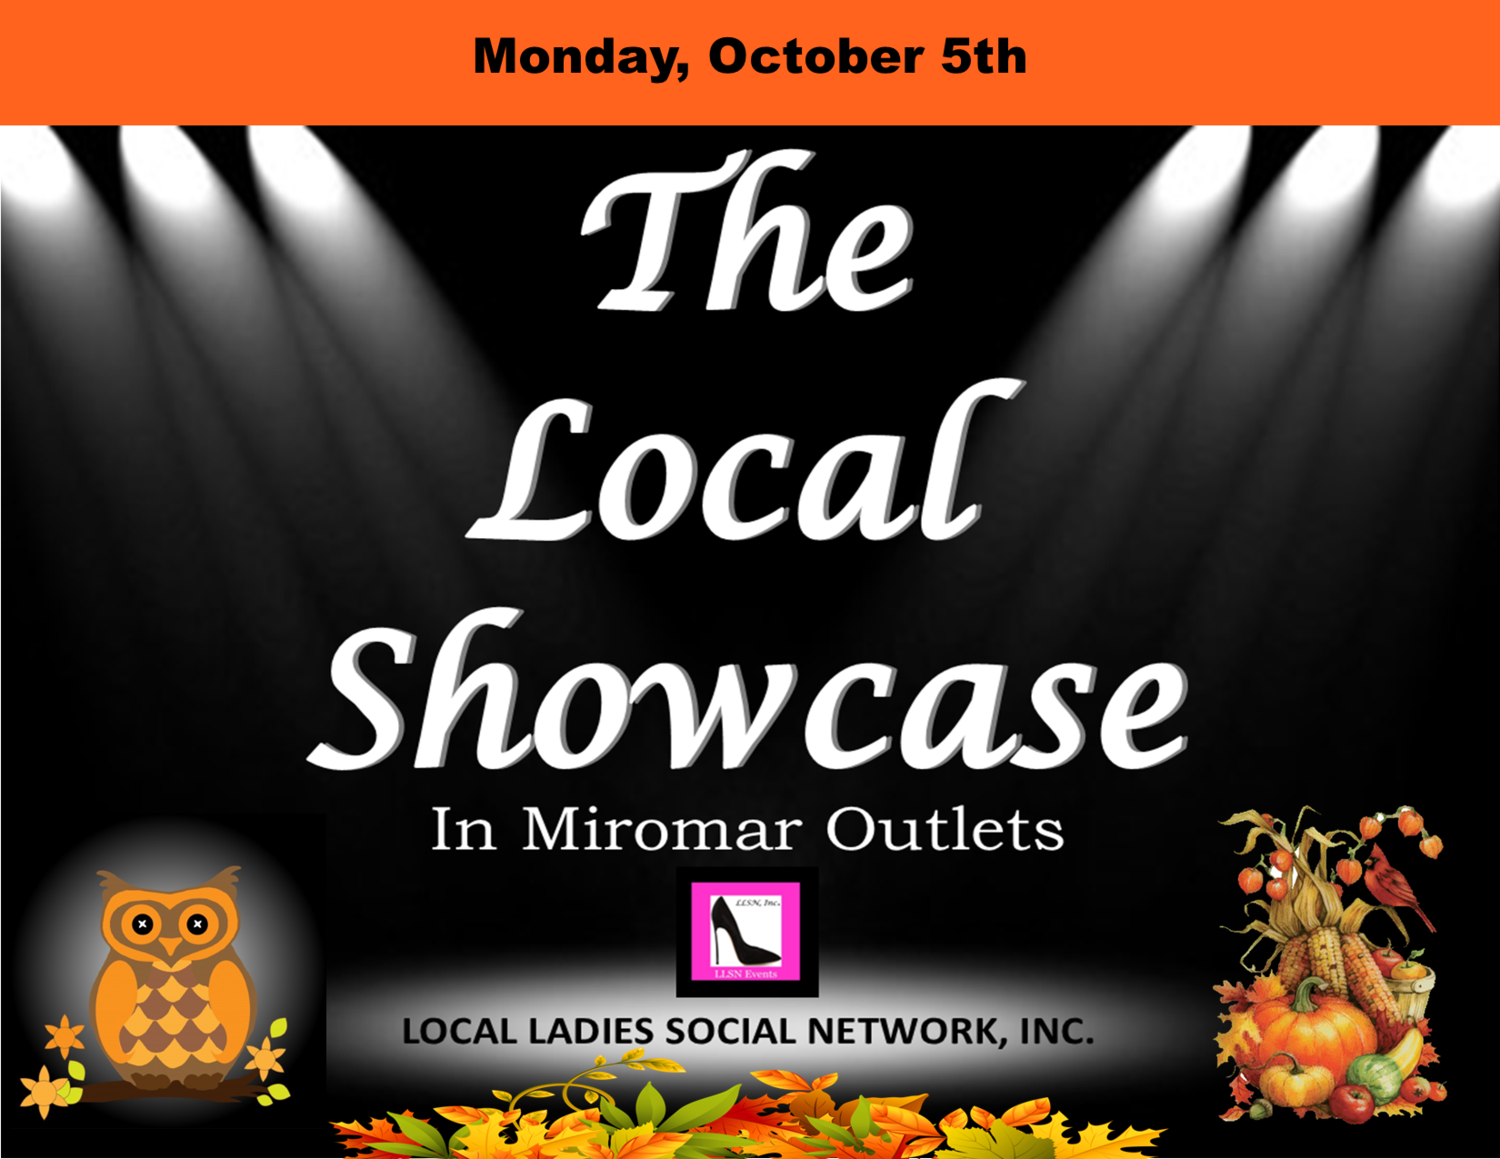 Monday, October 5th, 11am-7pm.